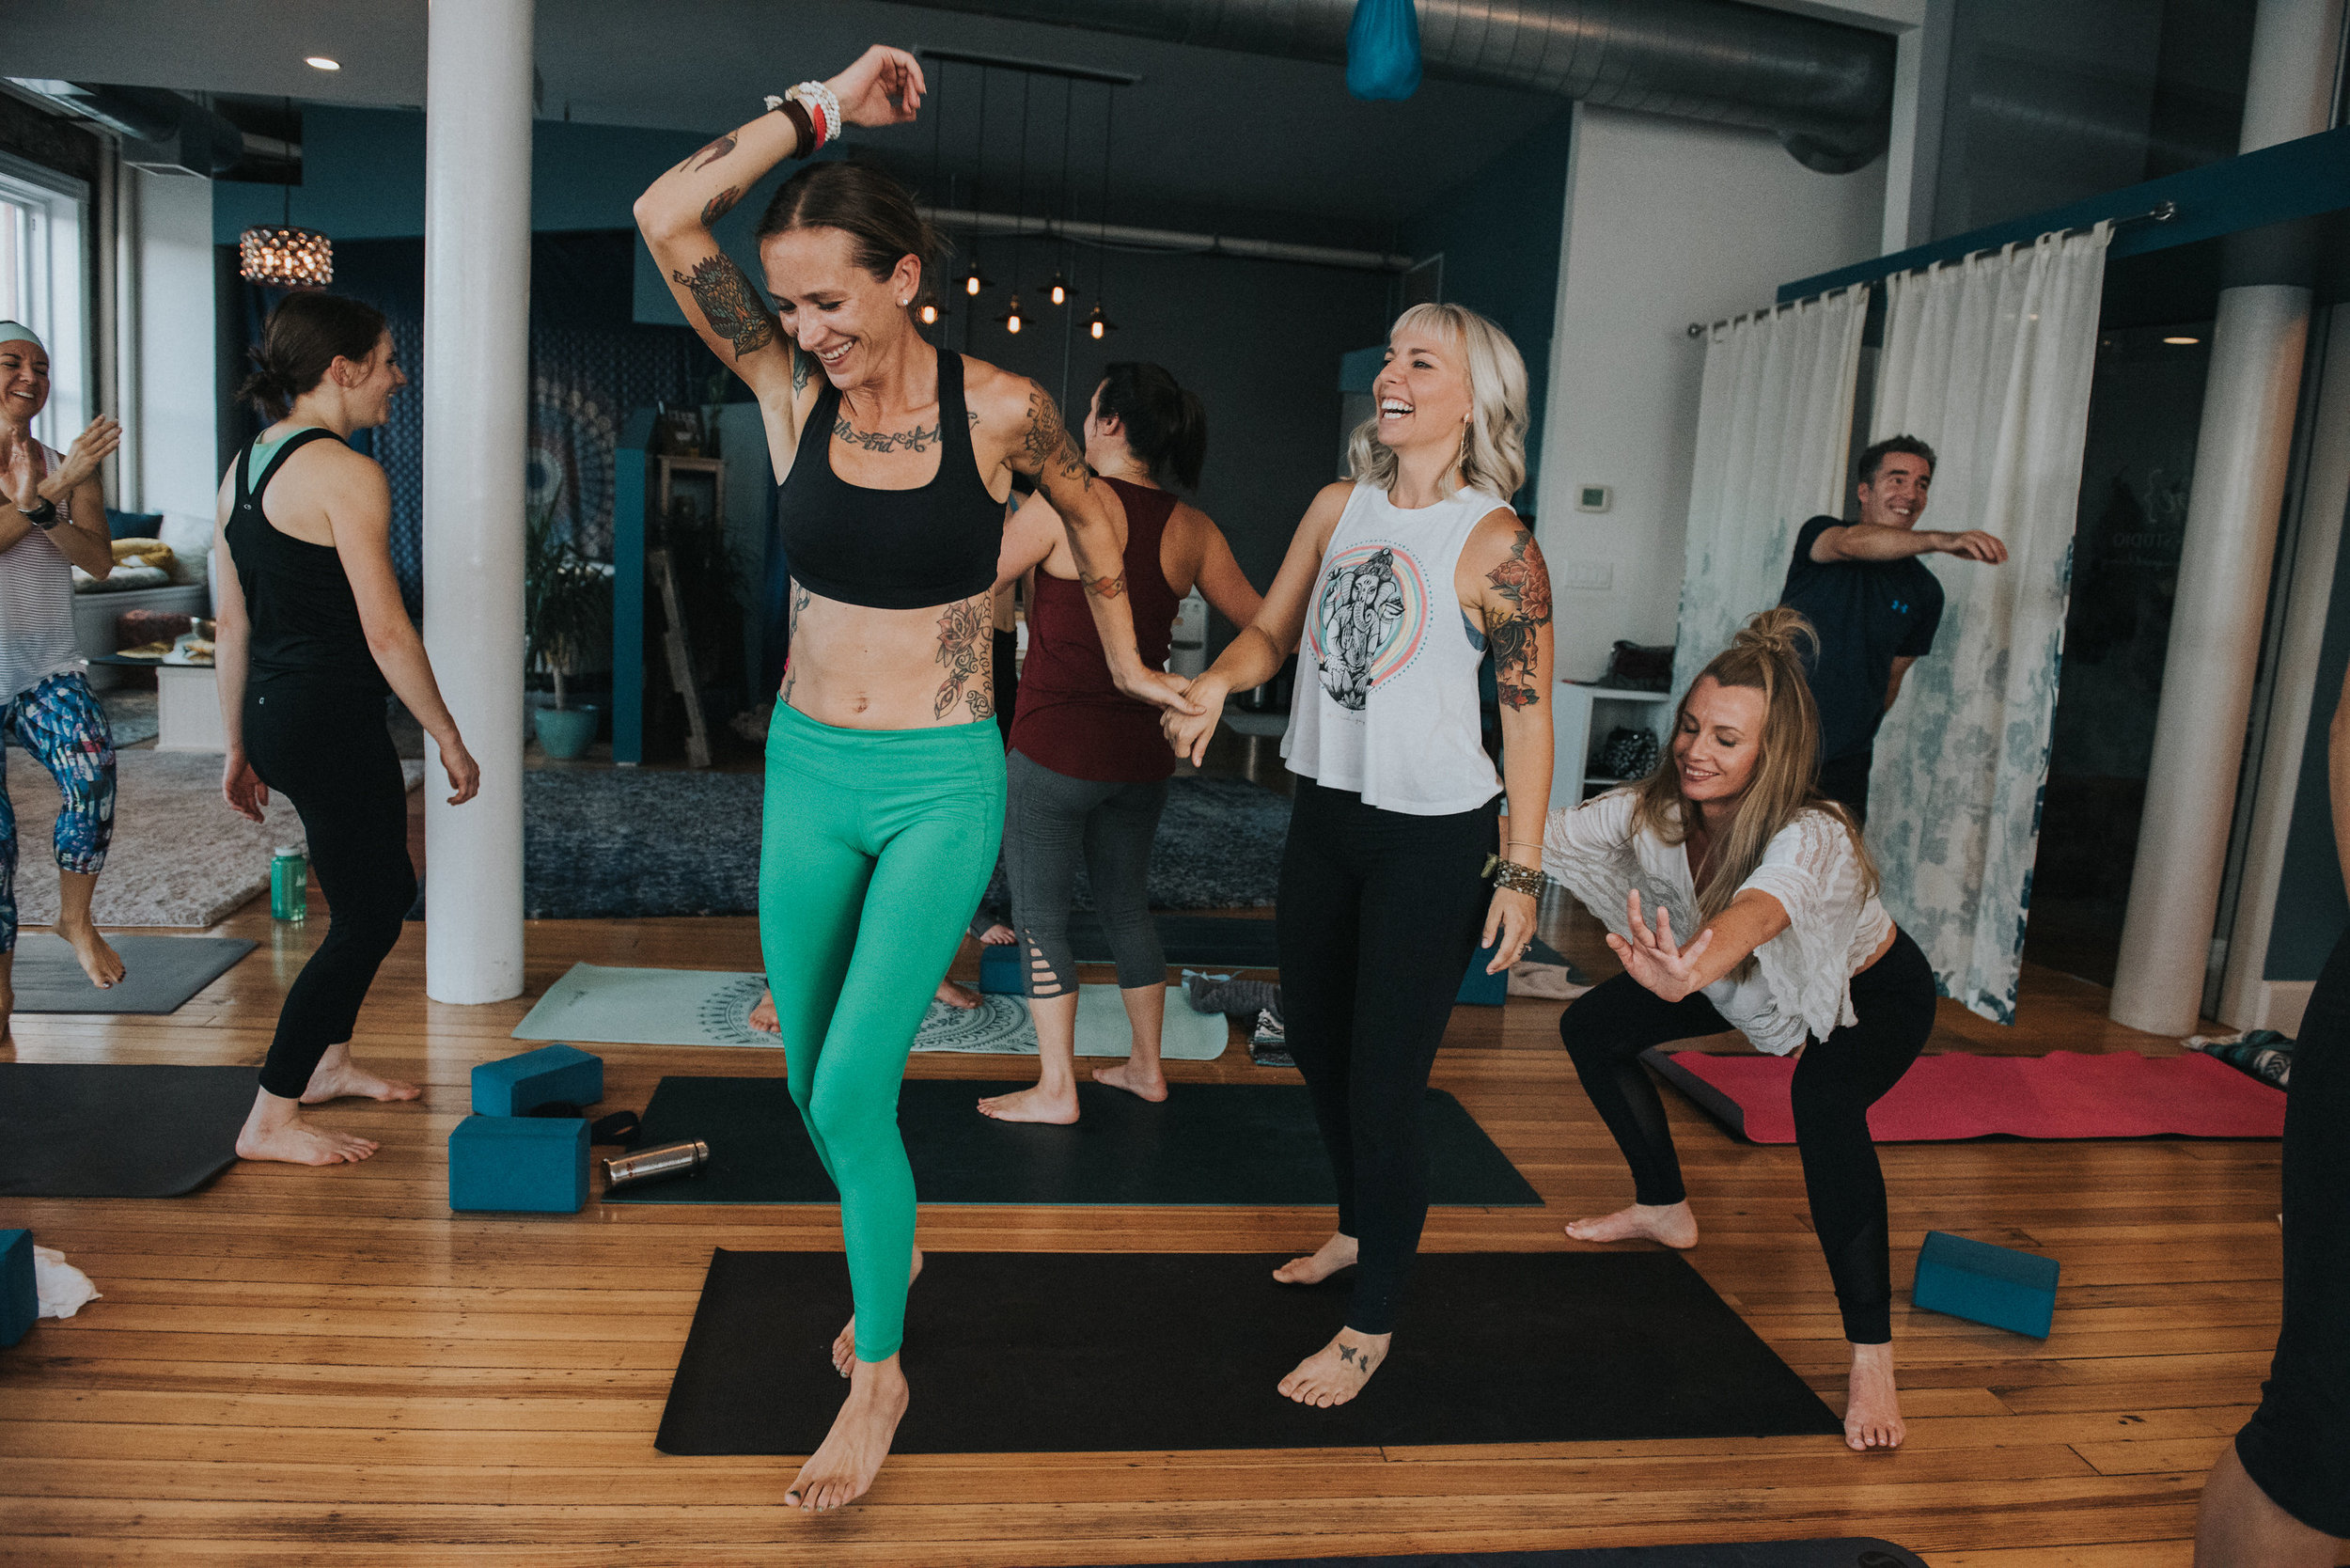 Be Celebrated: Jackie's Birthday Flow! - Saturday at 8:15am with Jackie. Class is free!COMMUNITY!!! My birthday is on Saturday which so happens to be the day the I have the humble opportunity to teach to you all! I'd love to offer you this class for FREE as my gift to you. It is reaffirming to my life to guide you in this practice and I feel so deeply nourished by each of you, especially this past year in welcoming my new daughter. Life....to be celebrated...to YOU.Join me this Saturday December 1st as we sweat, flow and CELEBRATE!!!